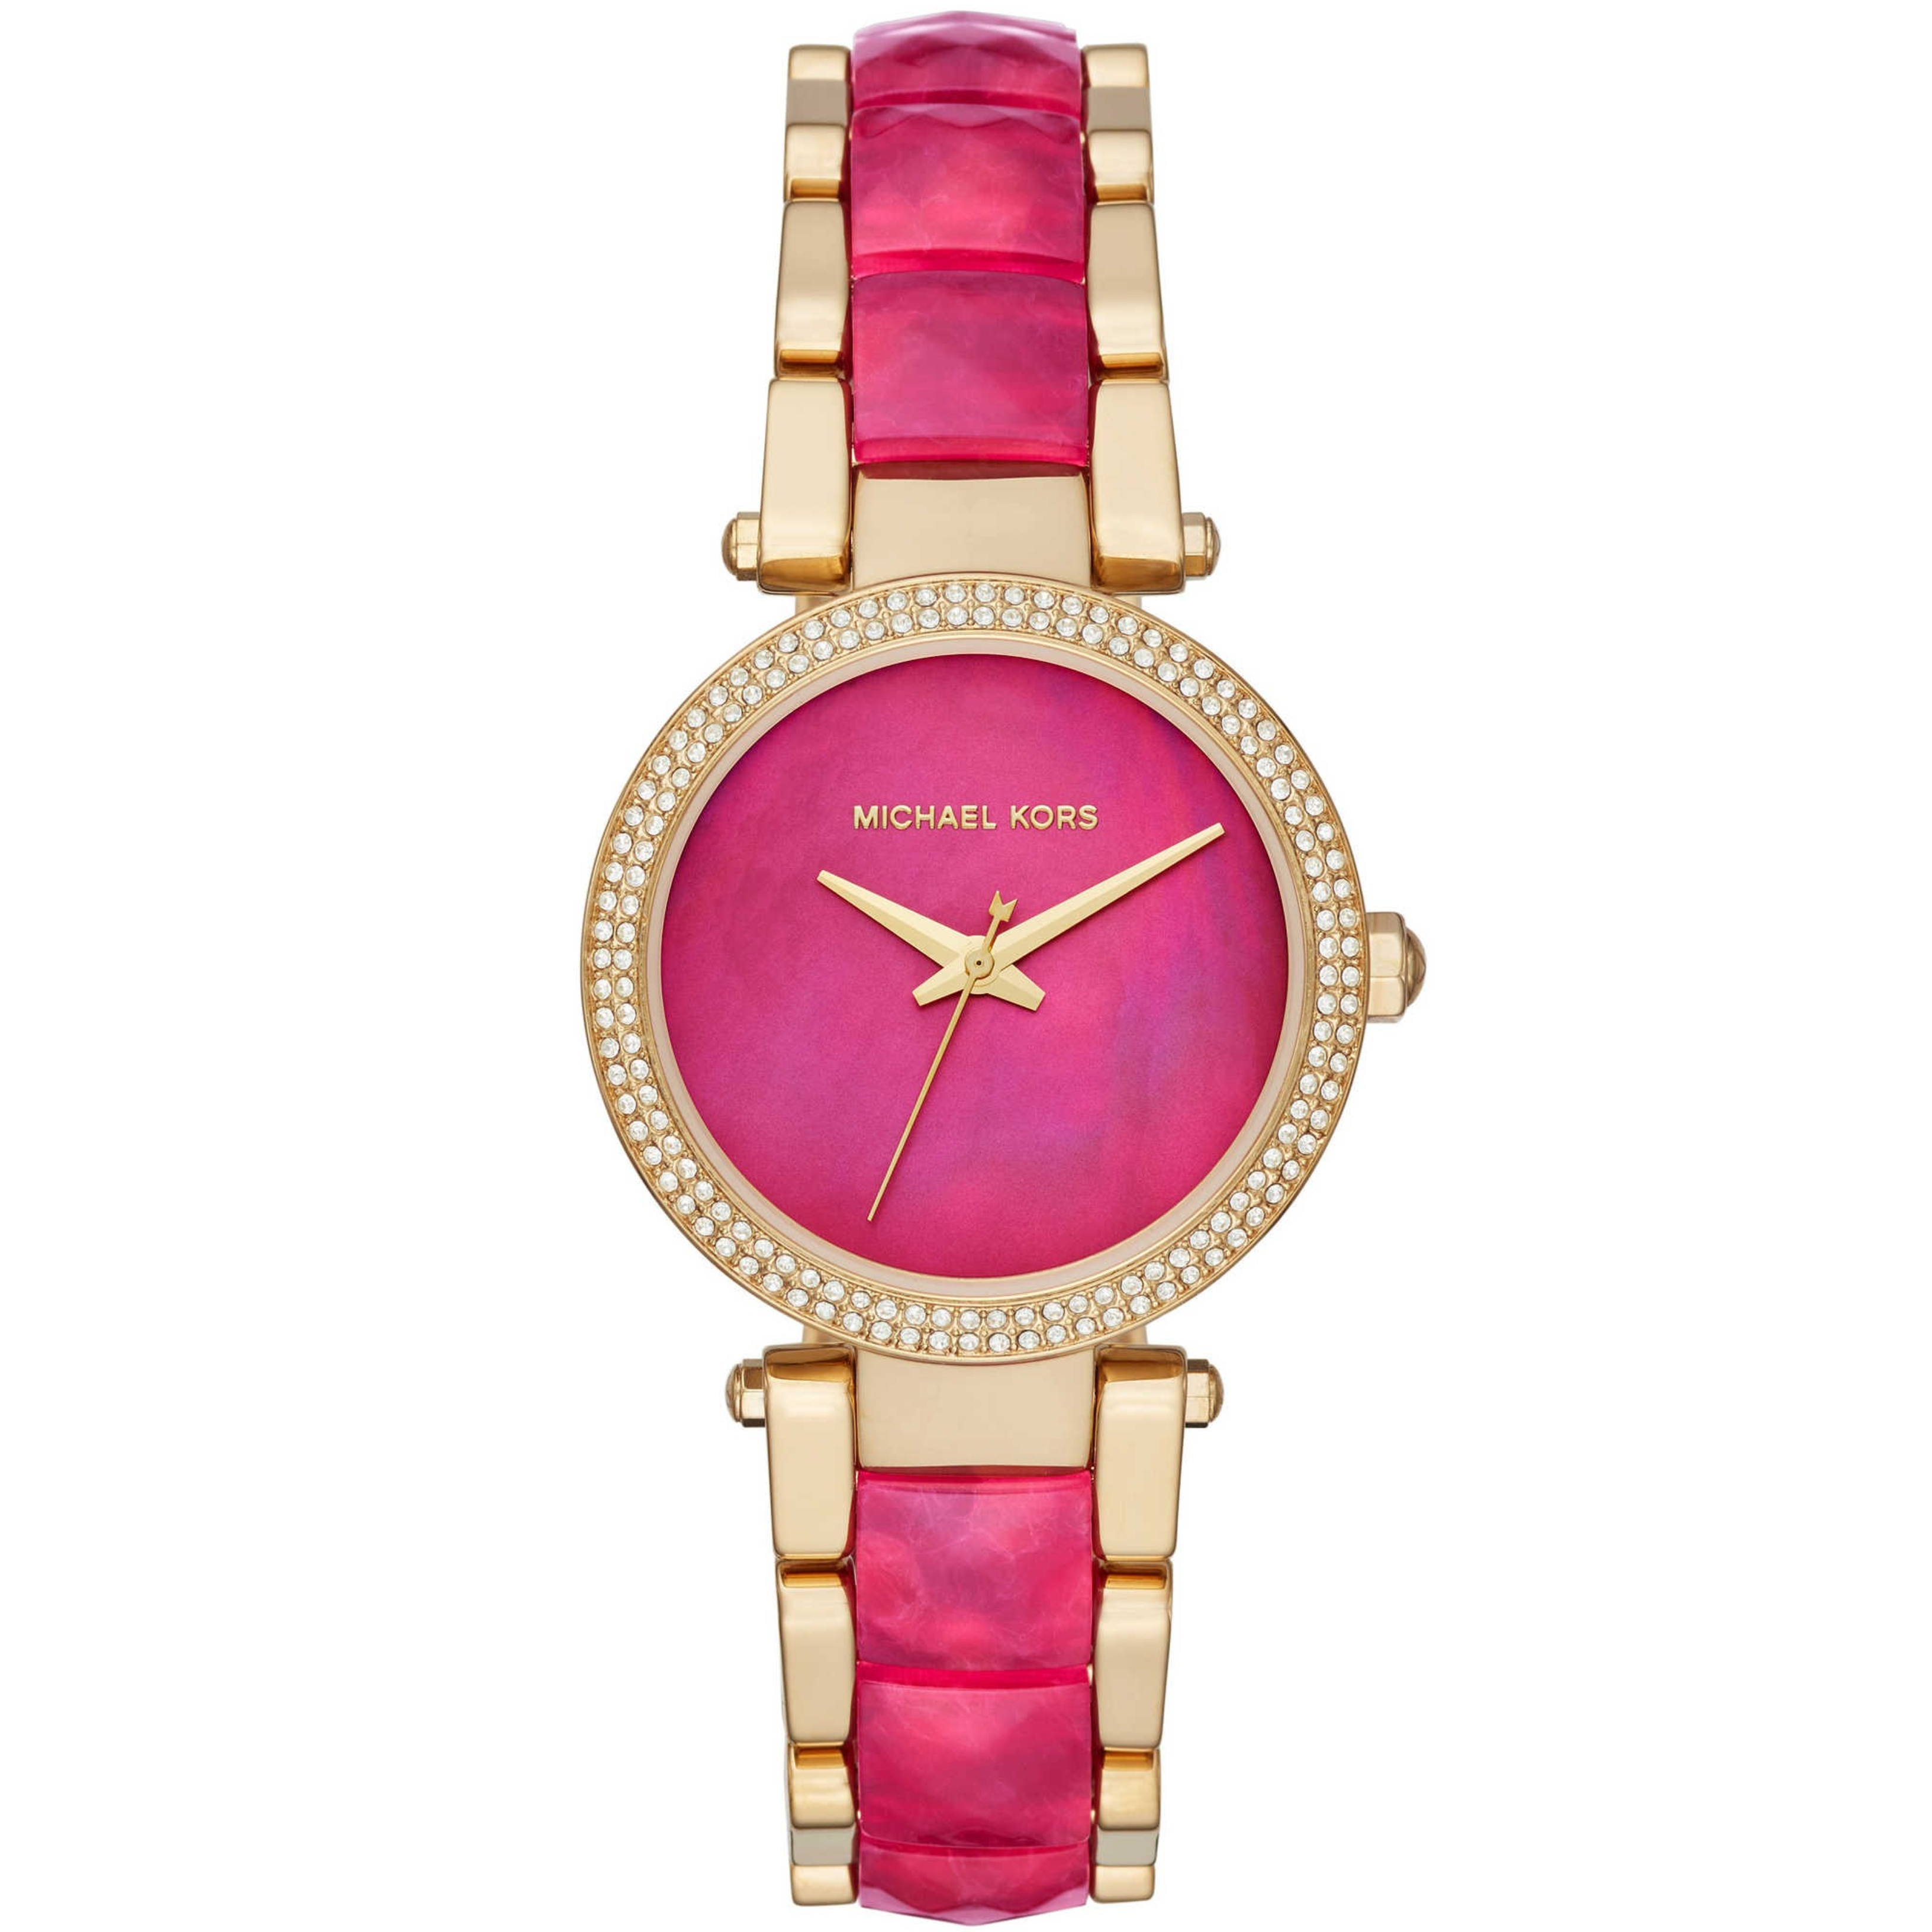 Michael Kors Parker Pink Mother Of Pearl Dial Dual Tone Band Ladies Watch MK6490